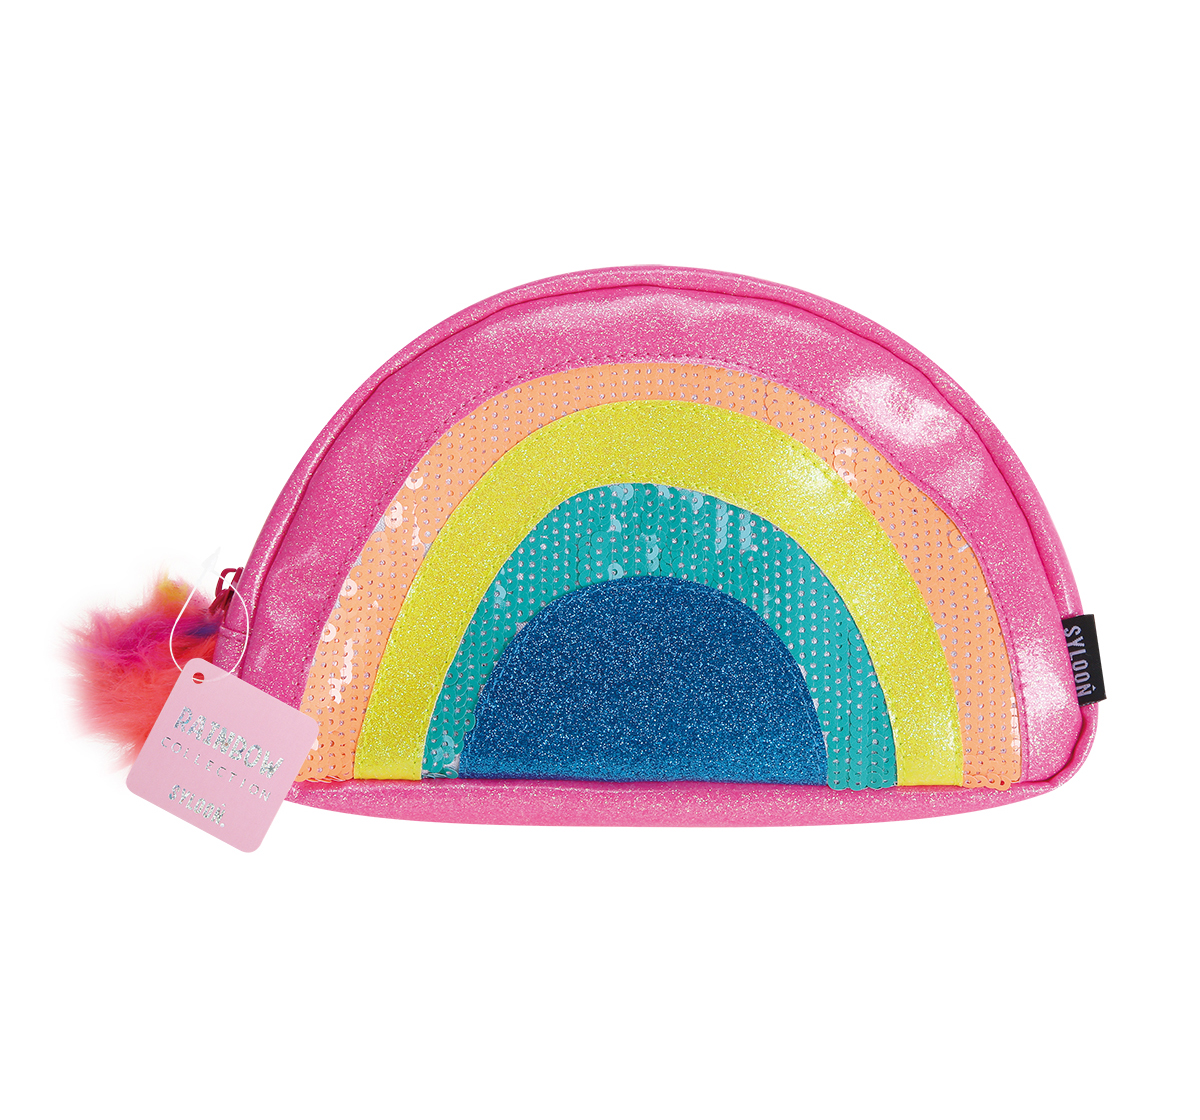 Syloon   Syloon Rainbow - Glitter Make Up Pouch Pencil Pouches & Boxes for Kids age 5Y+